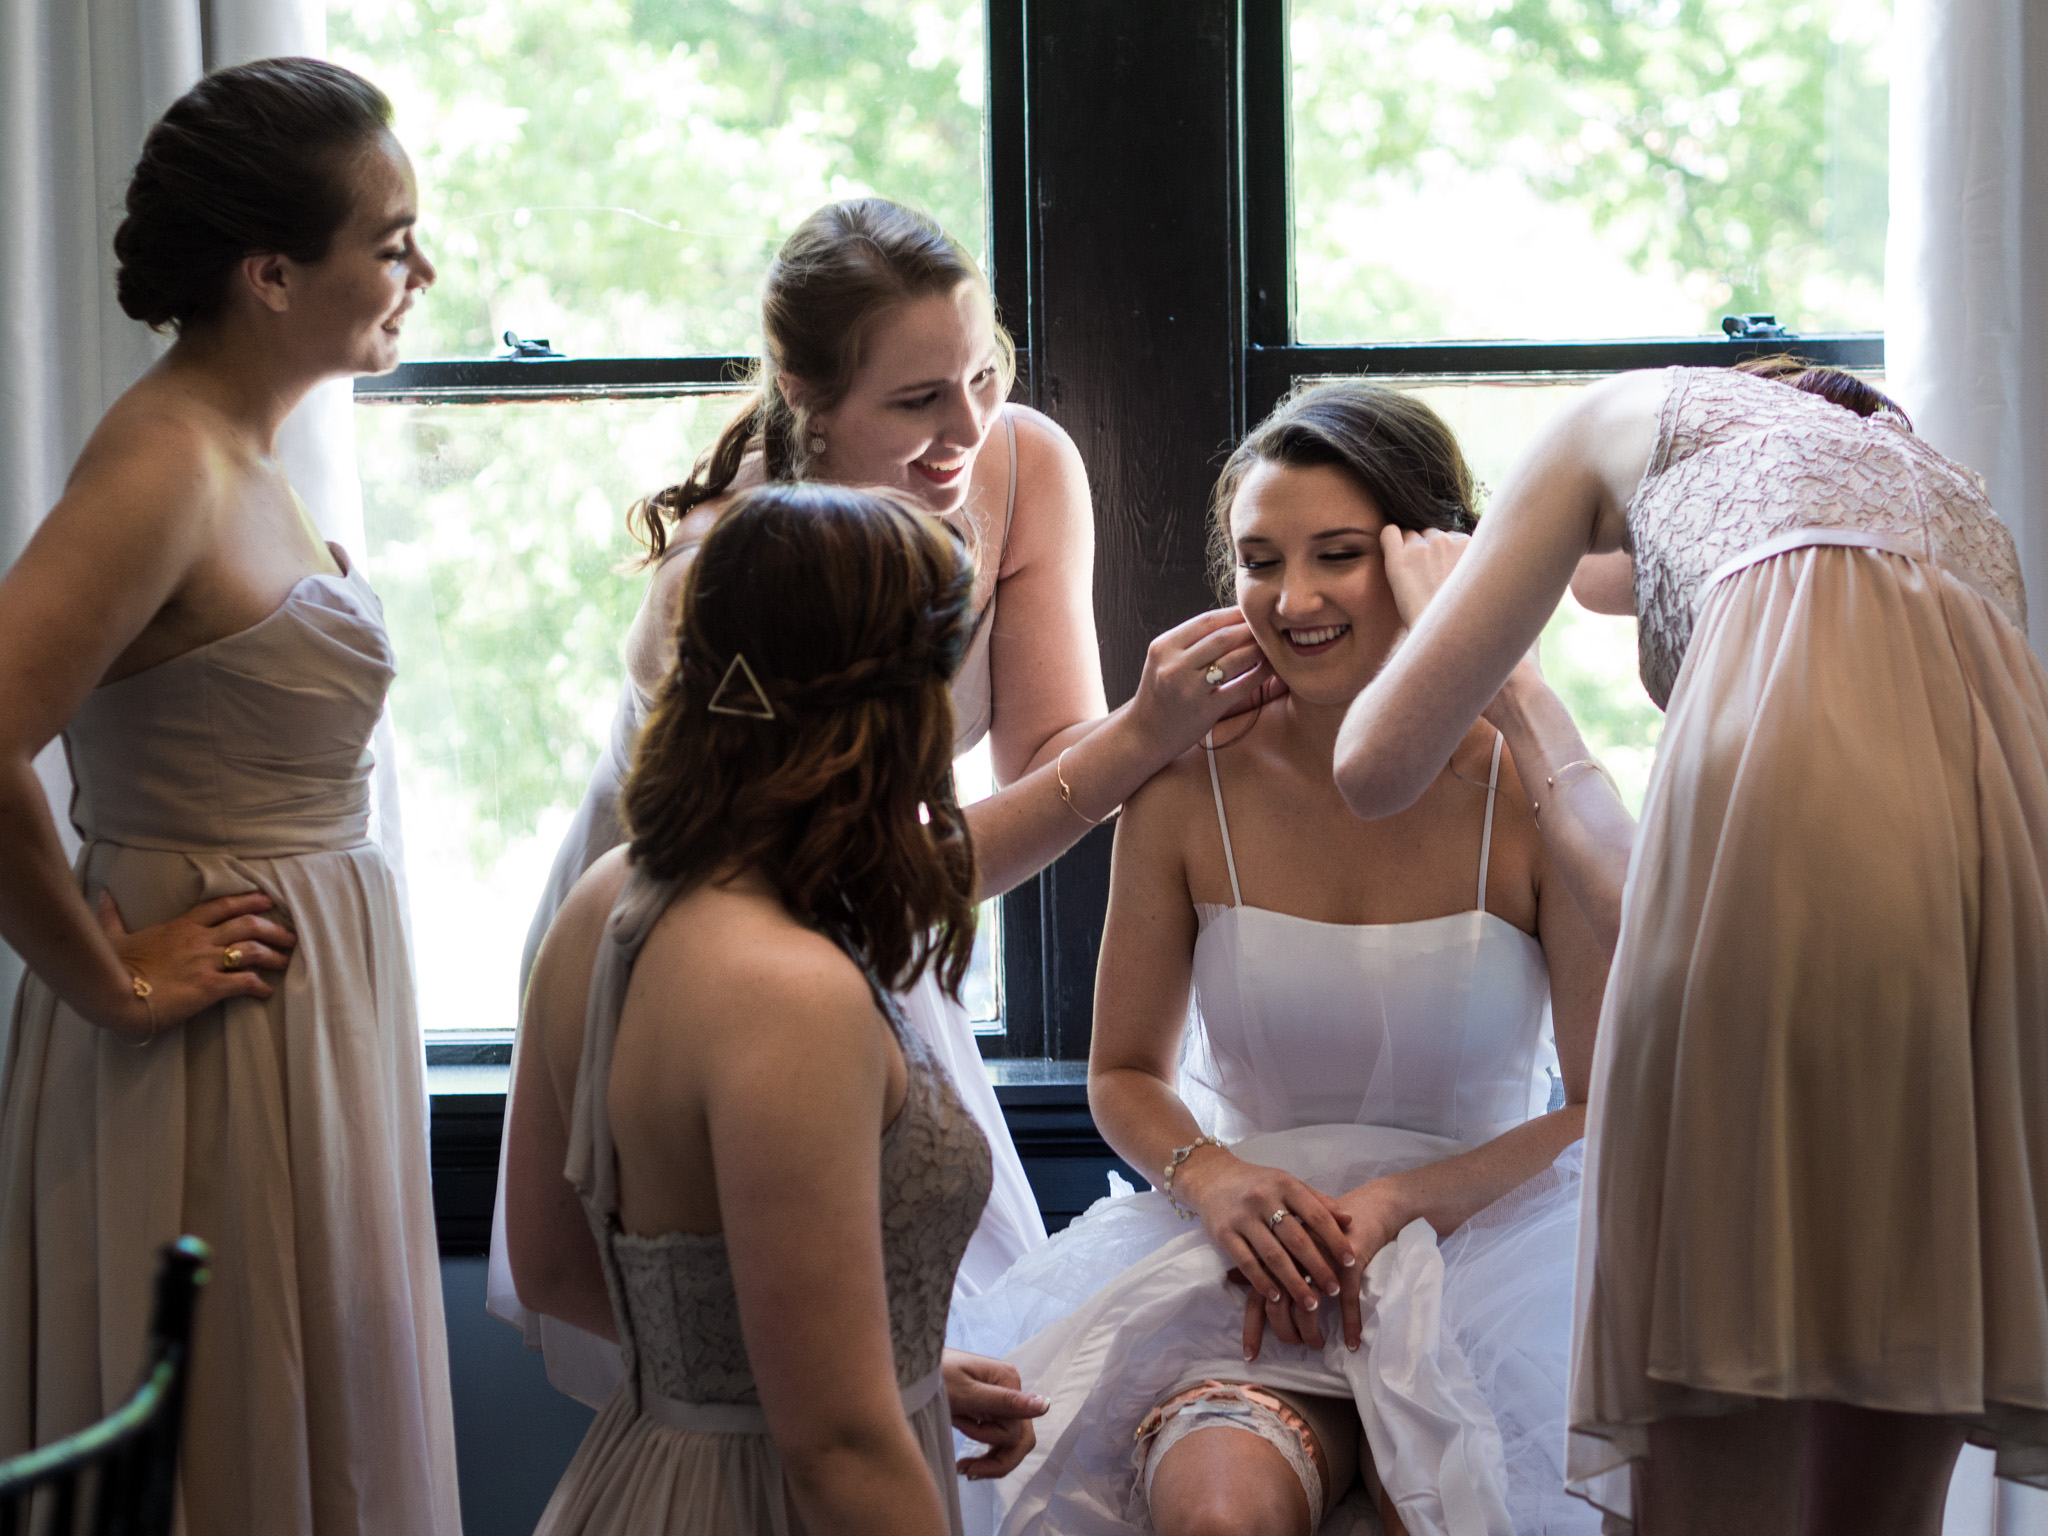 214 Martin Street, Wedding Photography, Wedding Dress, Getting Ready, Bridesmaids, Bridal Party